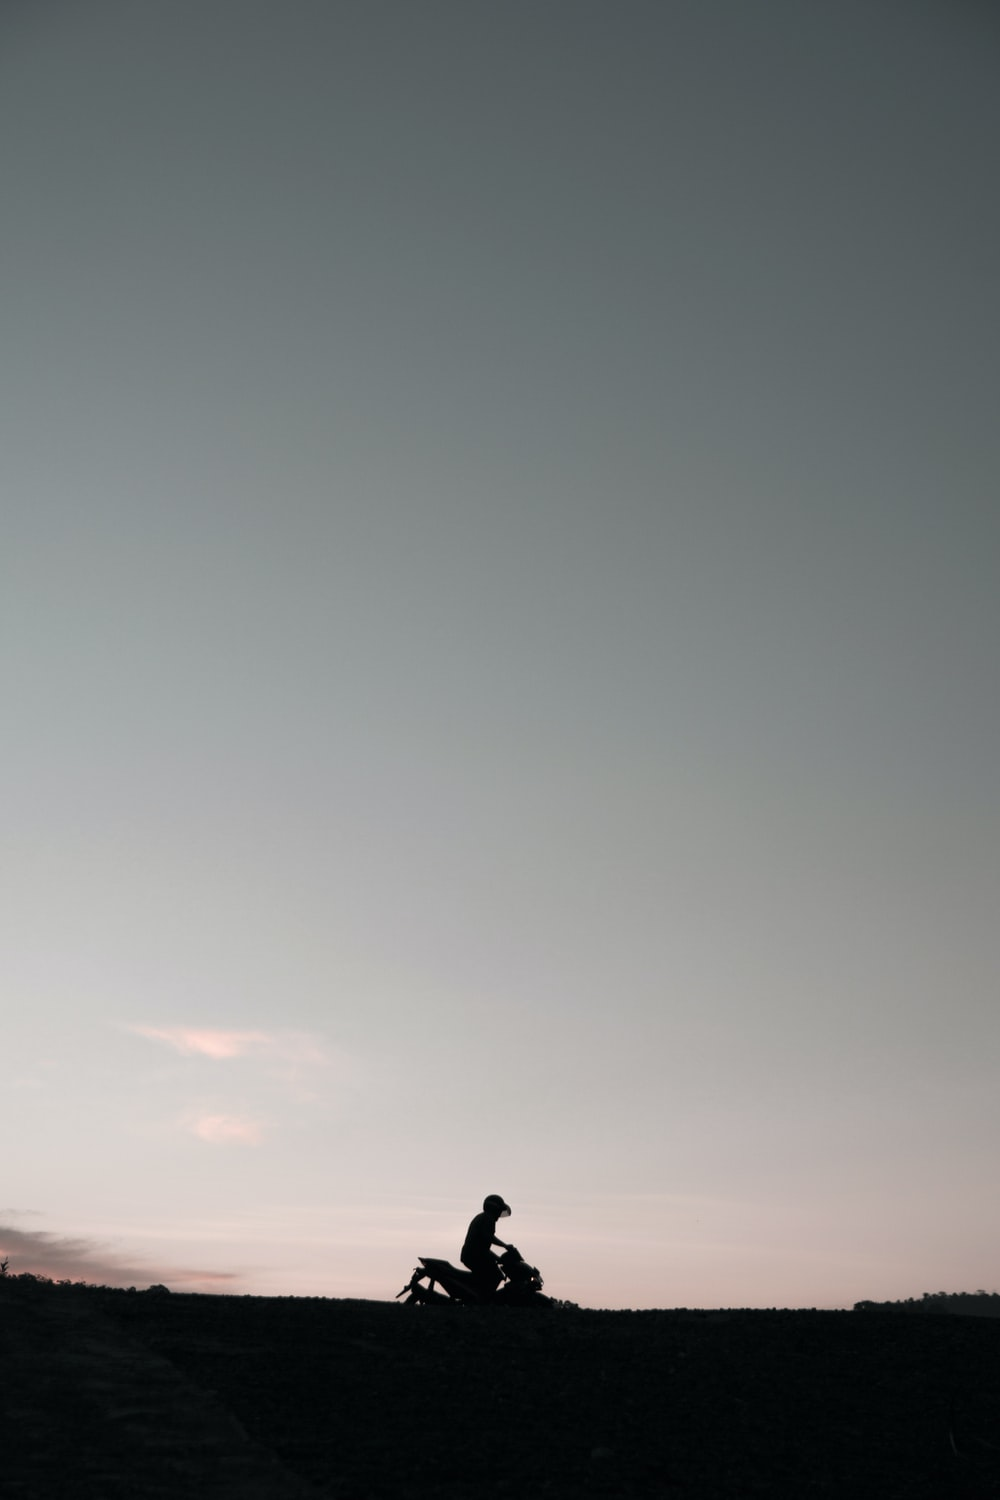 silhouette of person riding motorcycle